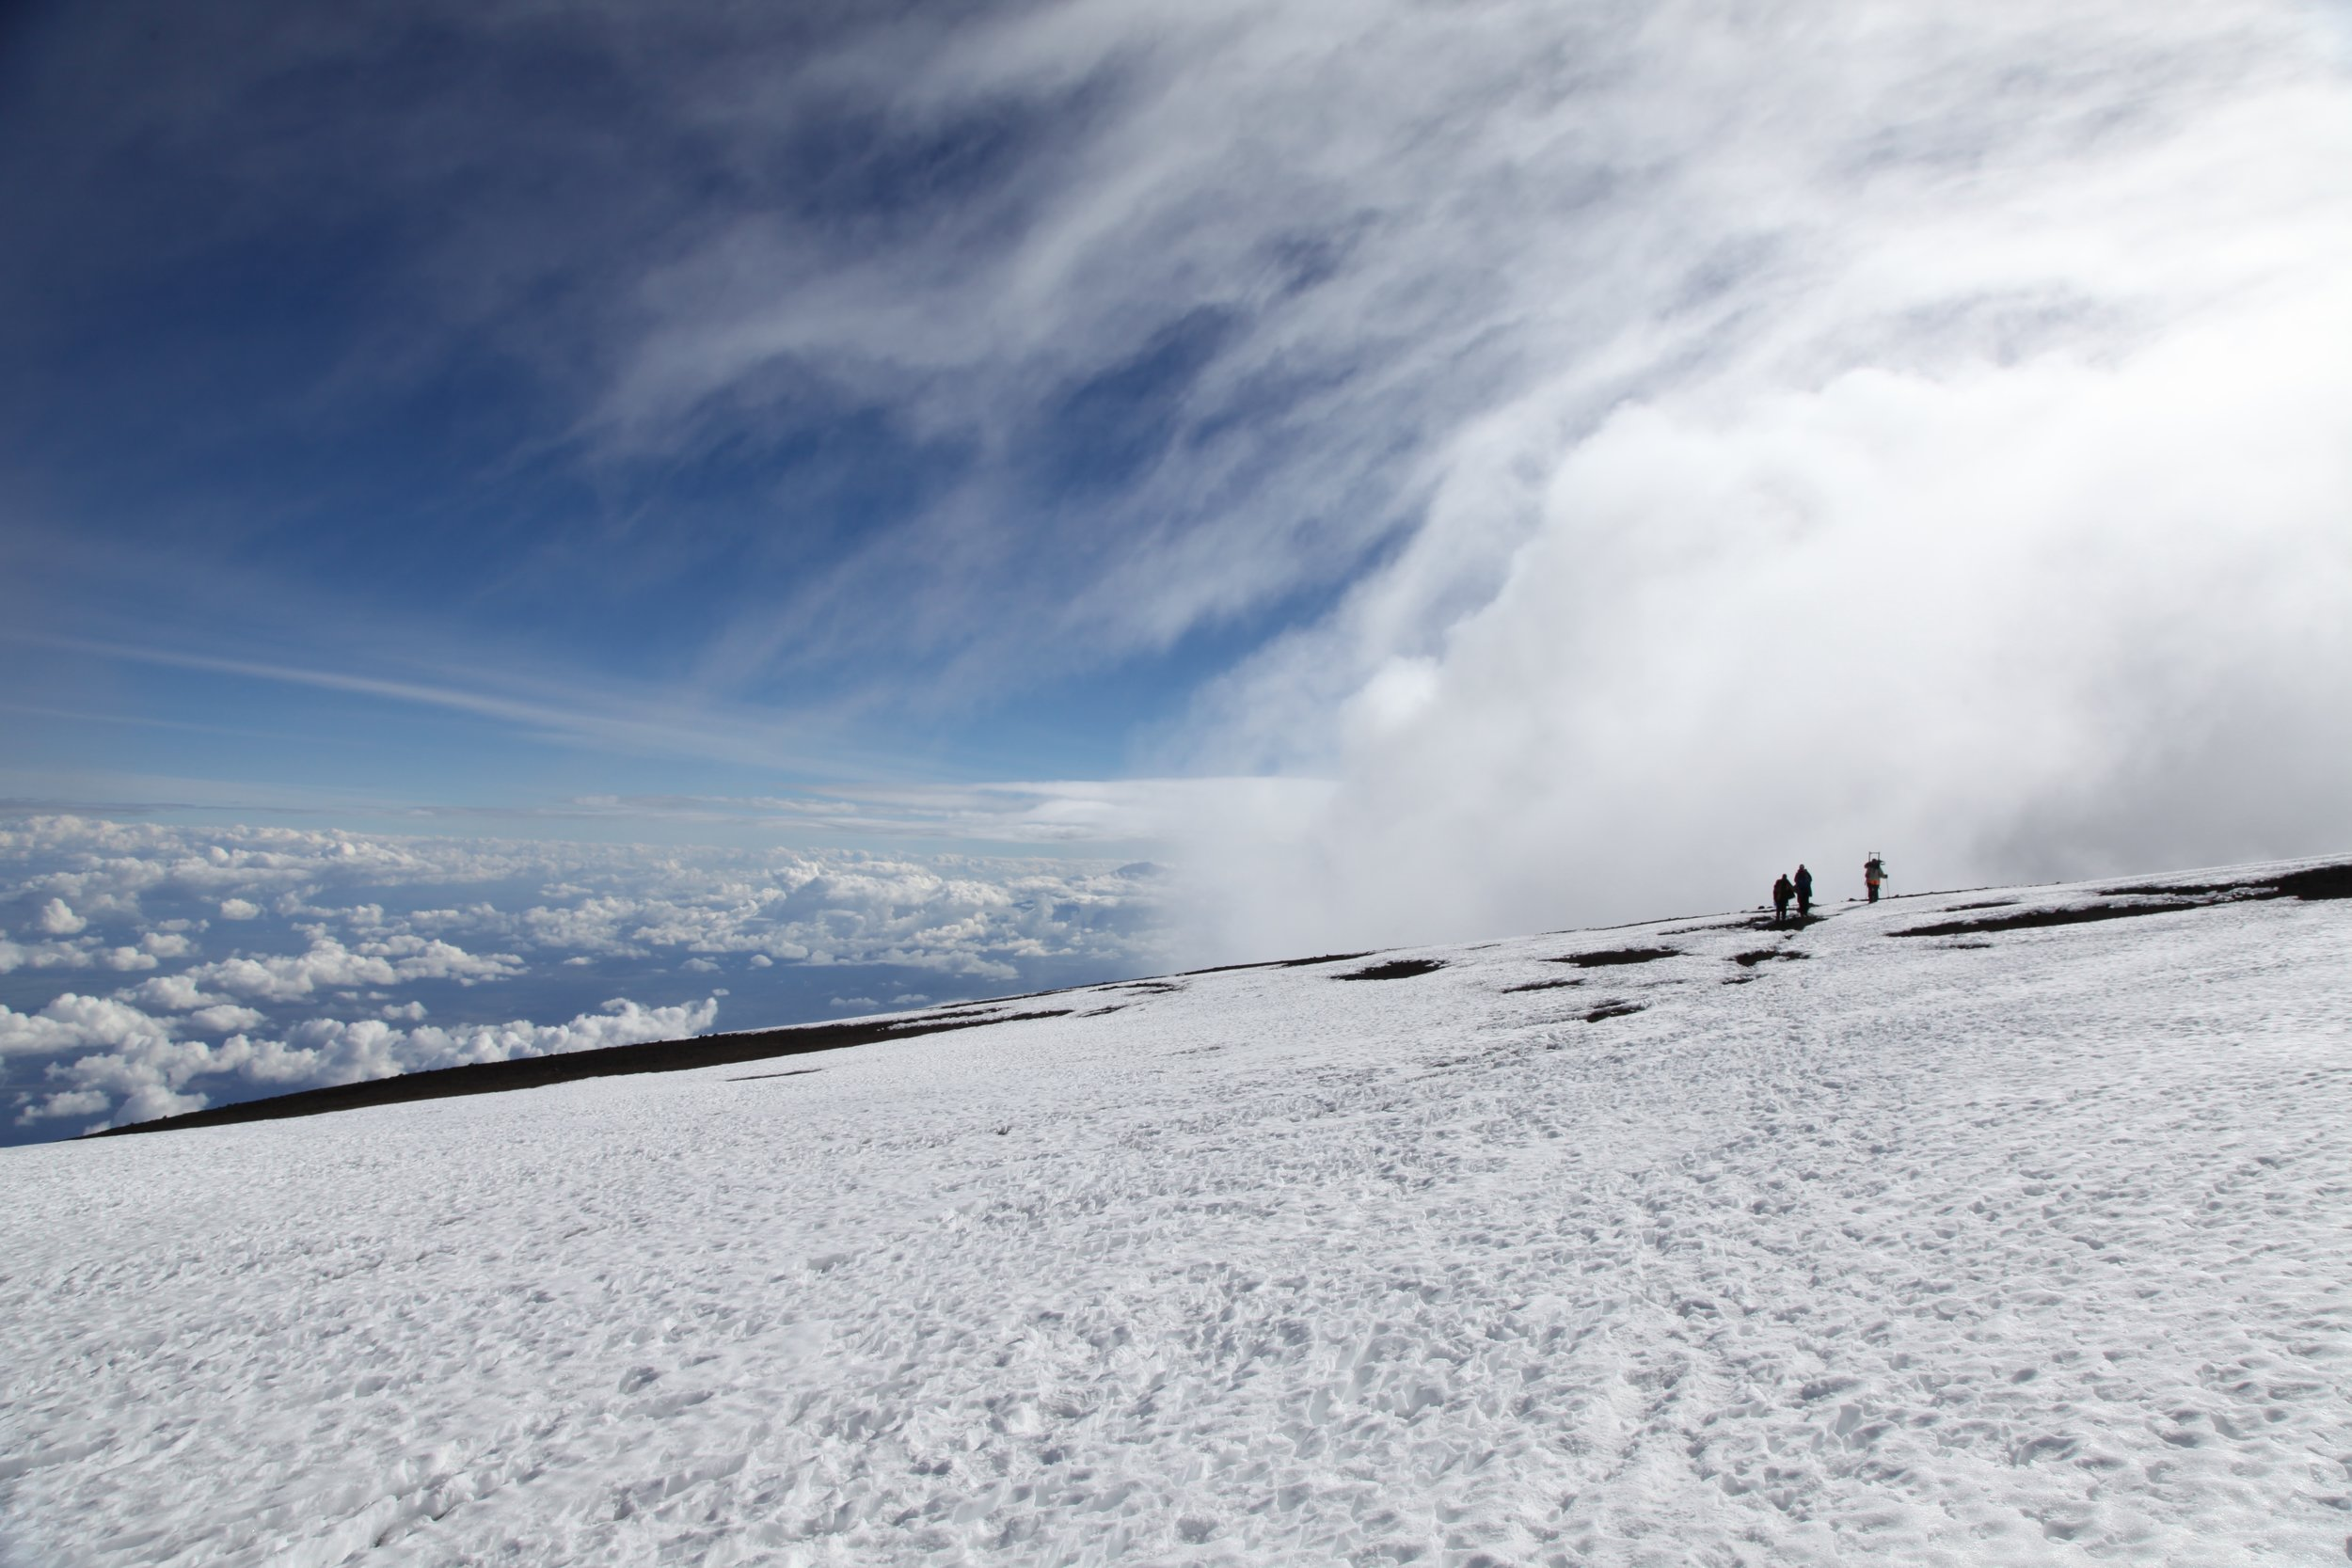 Reaching the top of Kilimanjaro before the match. Img: Dana Roesiger